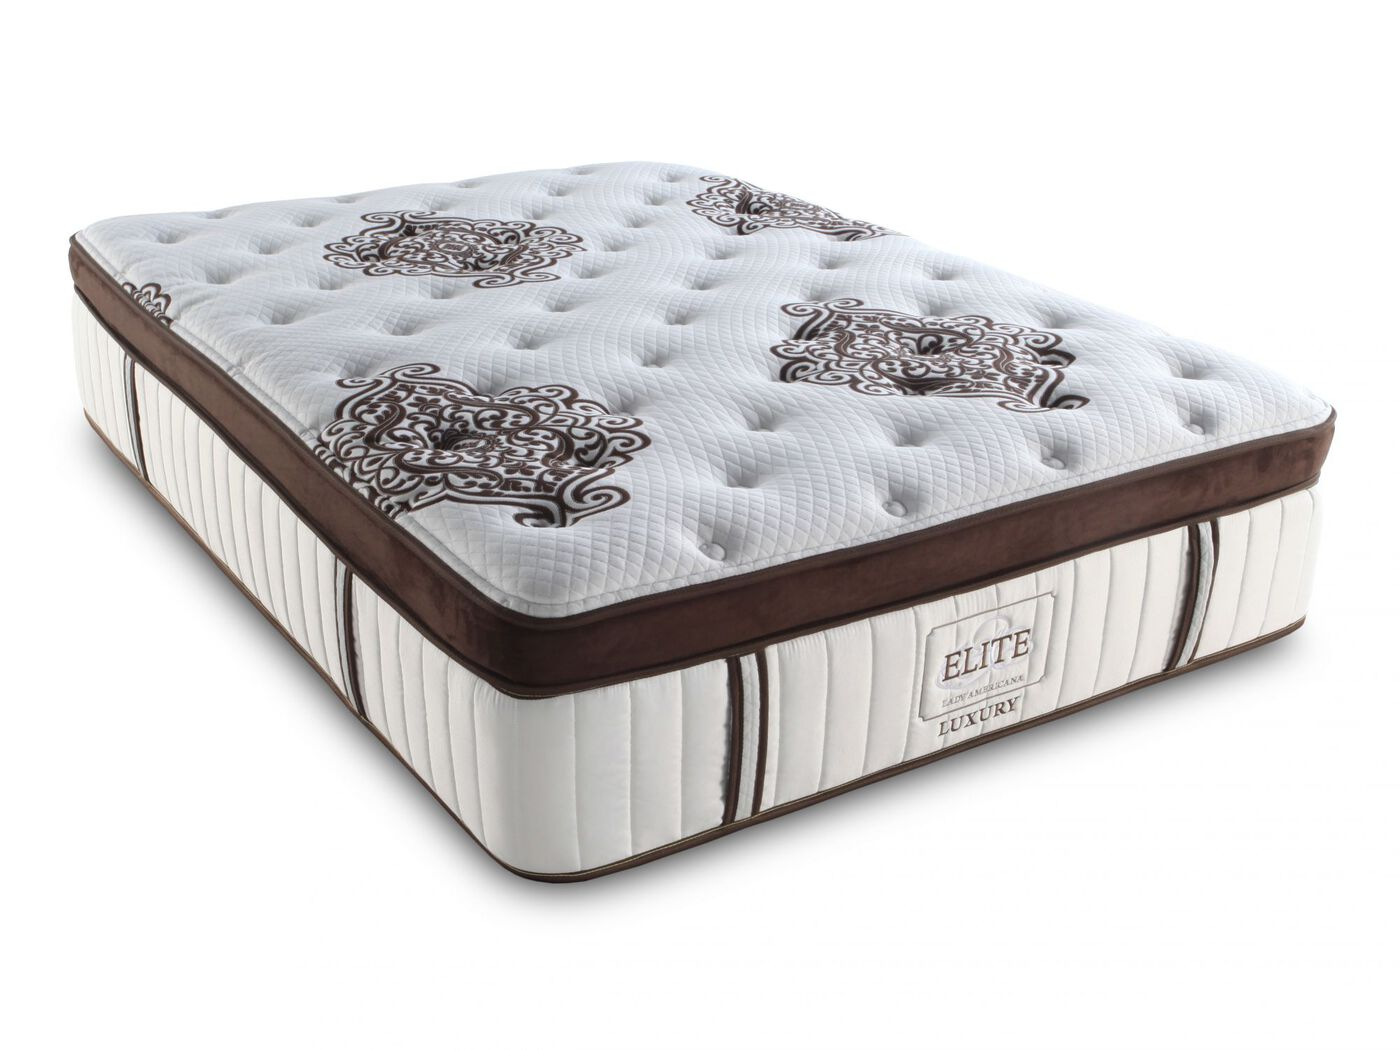 mathis brothers mattresses americana elite luxury resplendent mattress mathis 12364